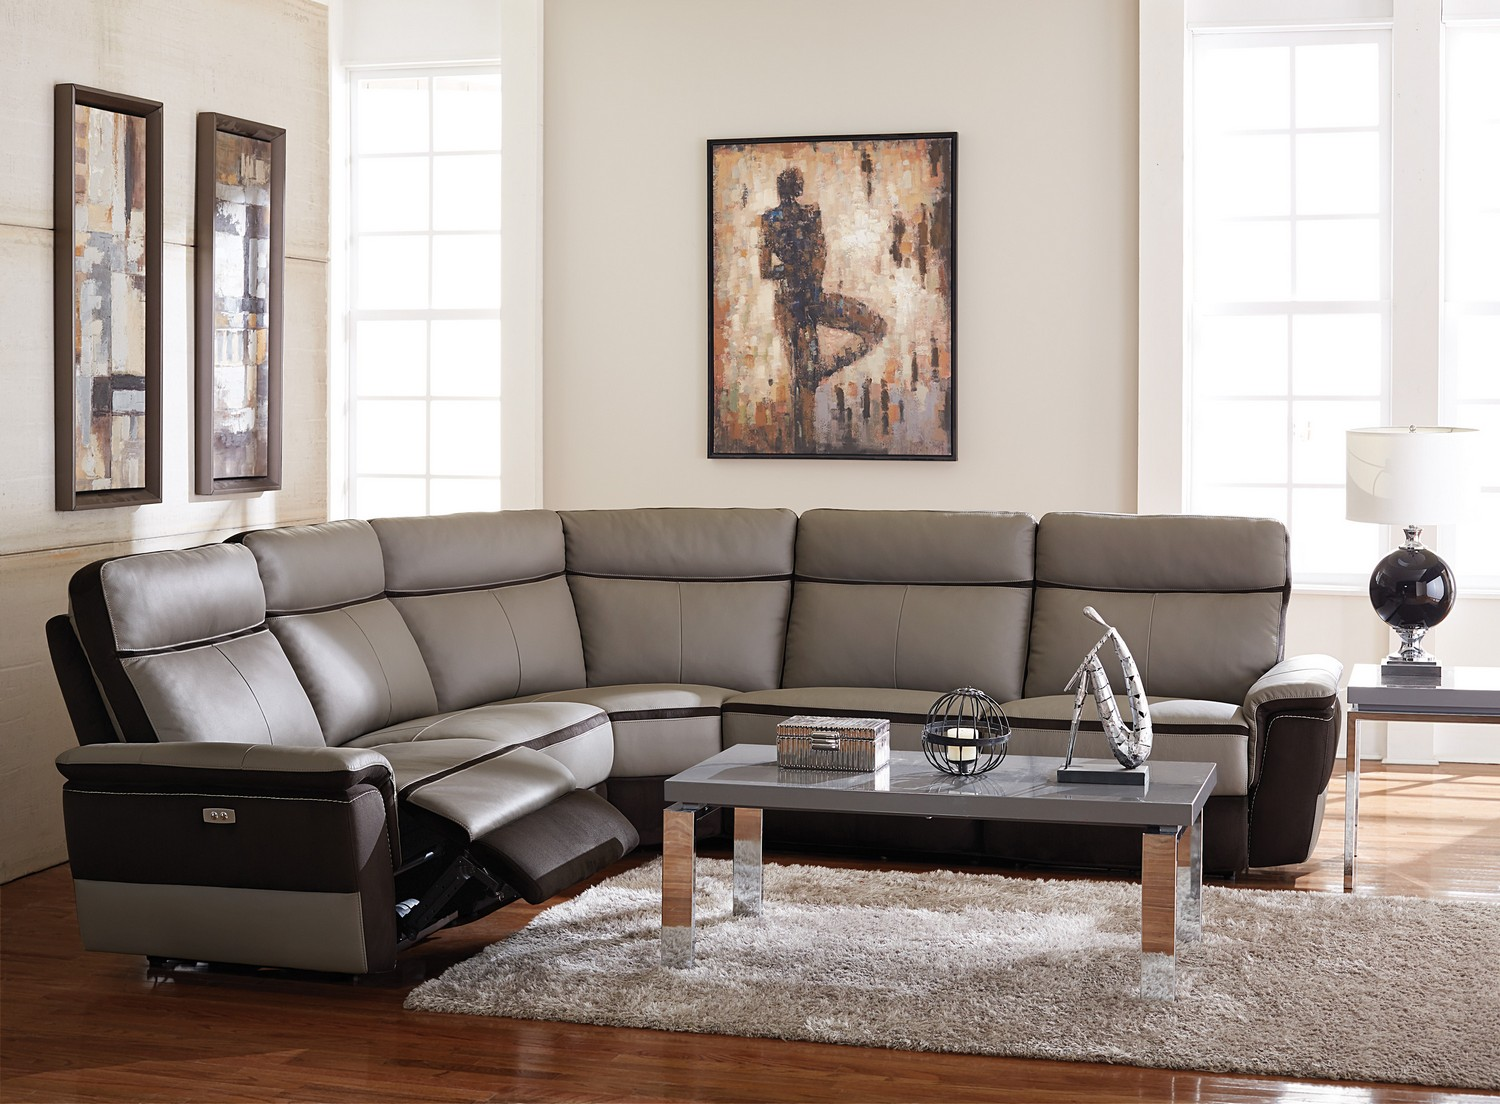 Strange Homelegance Laertes Power Reclining Sectional Sofa Set Top Grain Leather Fabric Taupe Grey Bralicious Painted Fabric Chair Ideas Braliciousco